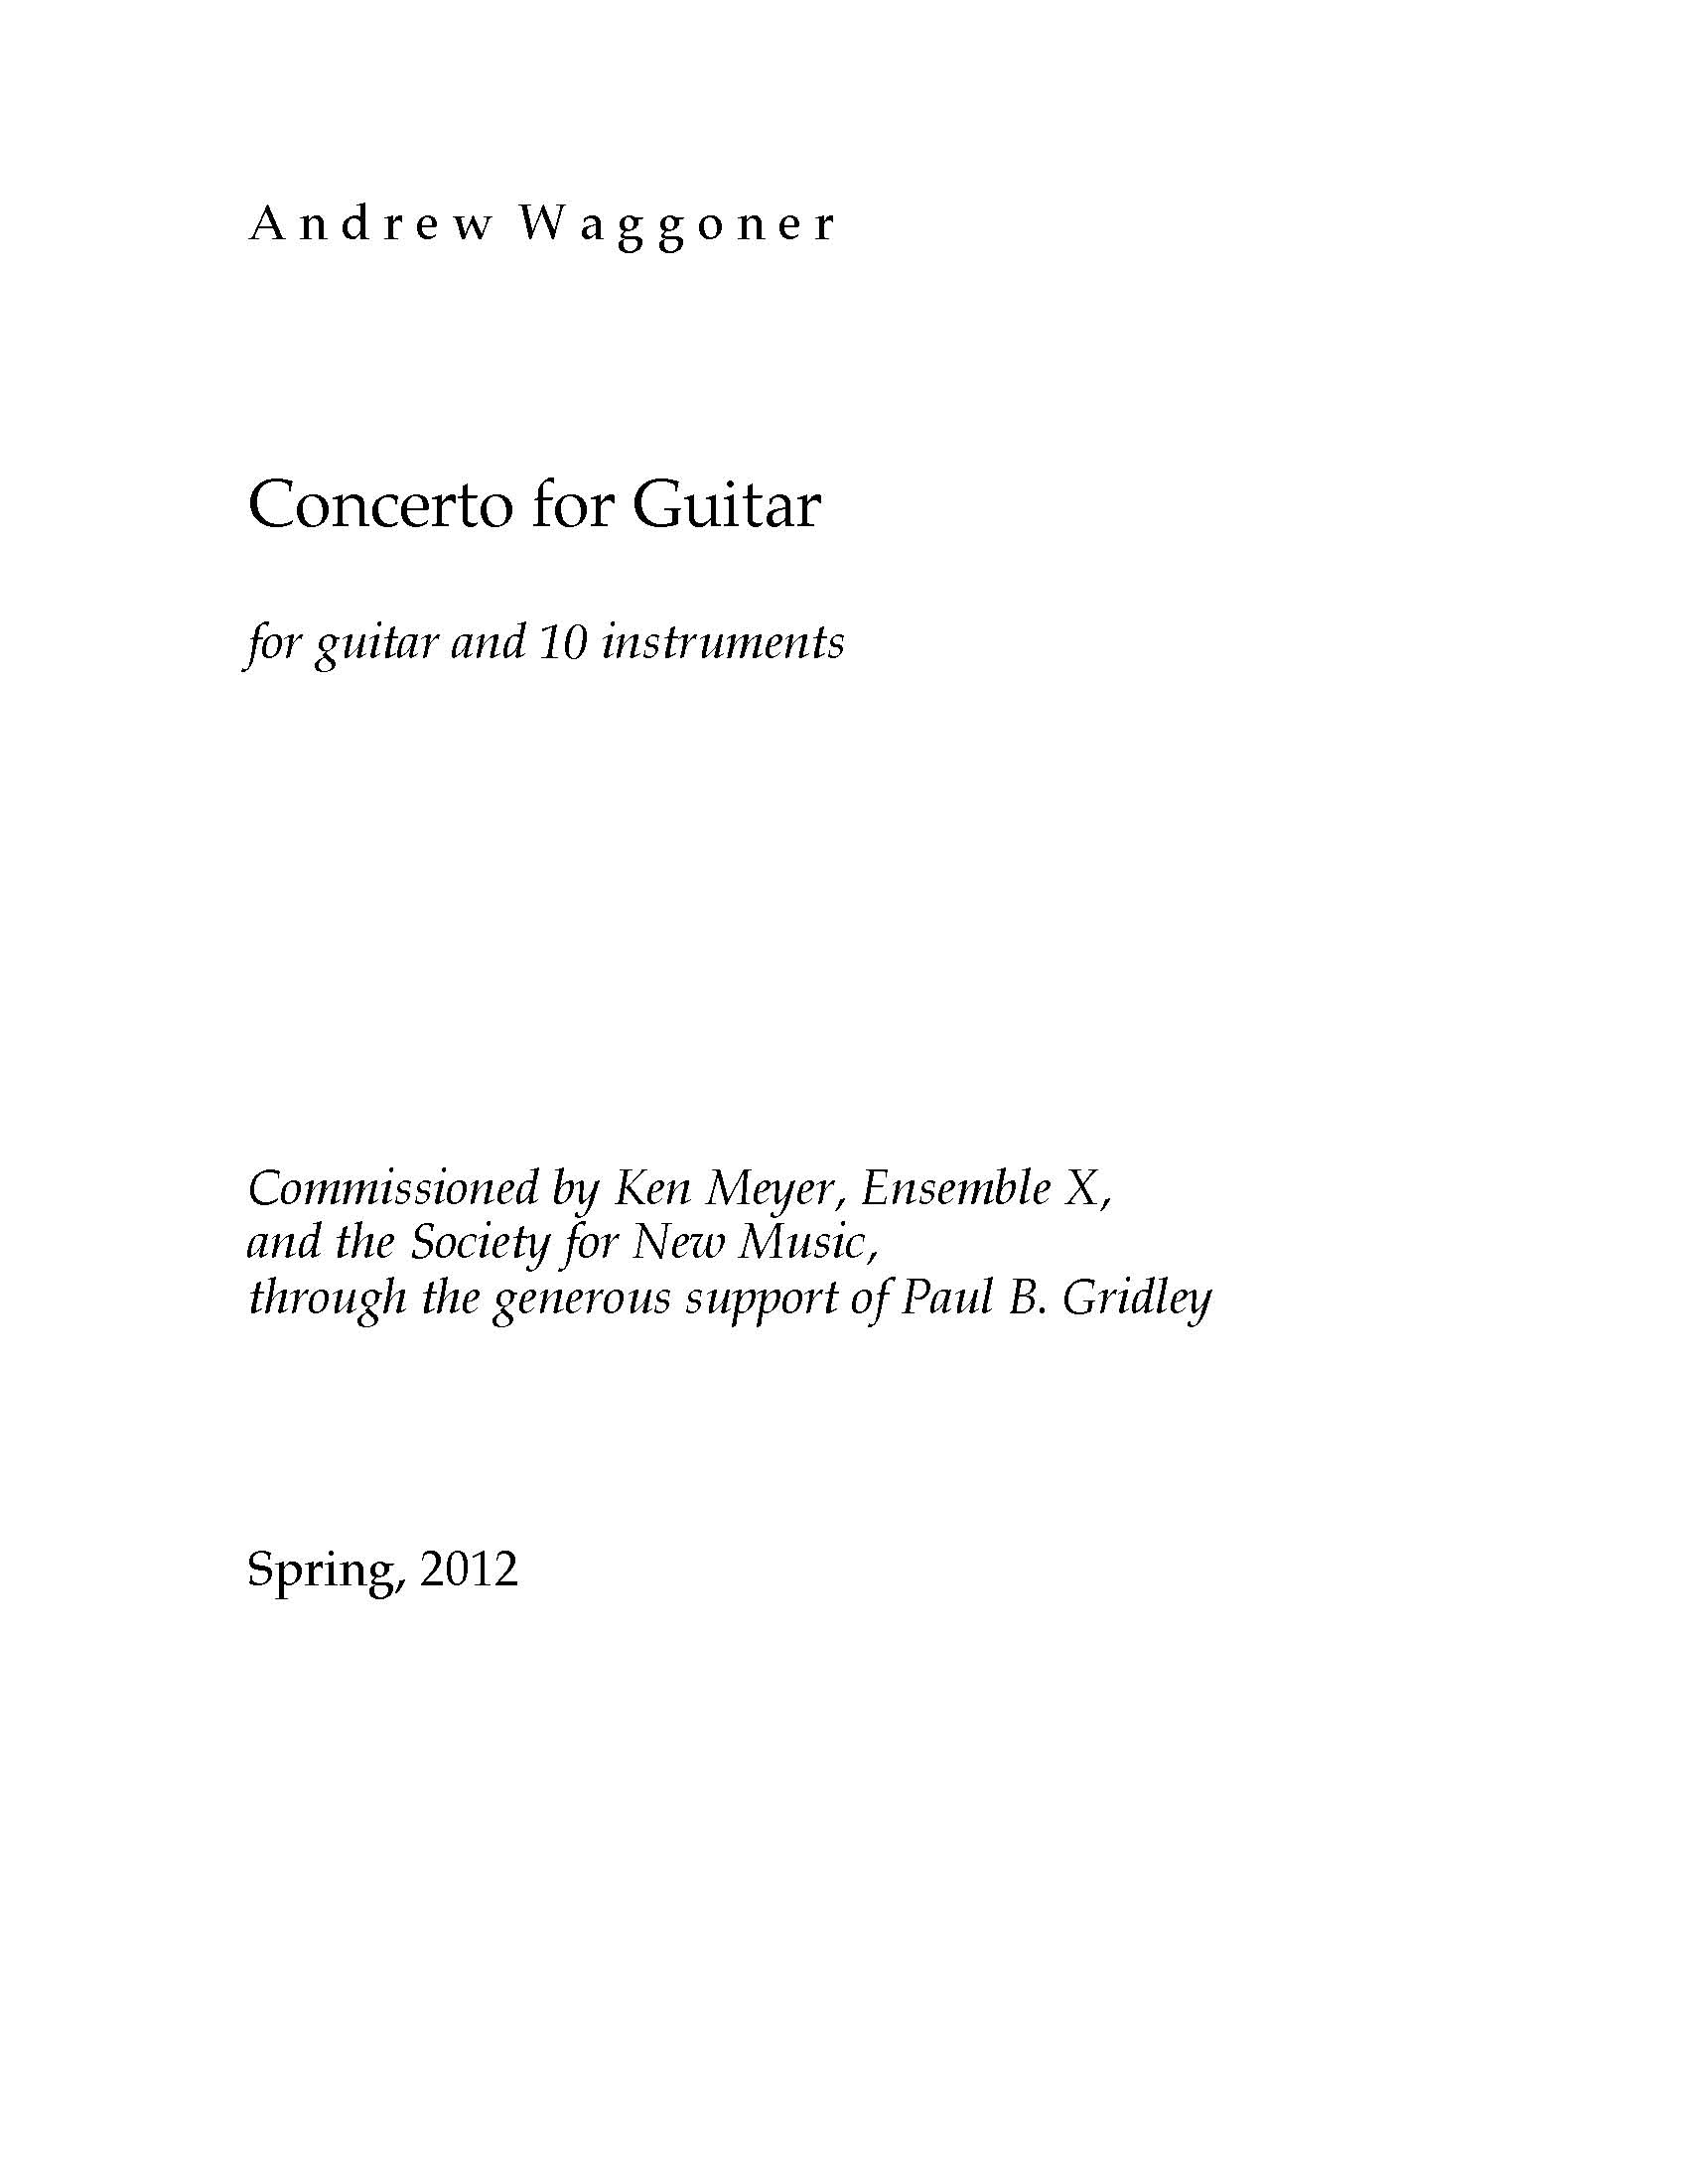 Concerto for Guitar for Guitar and 10 instruments